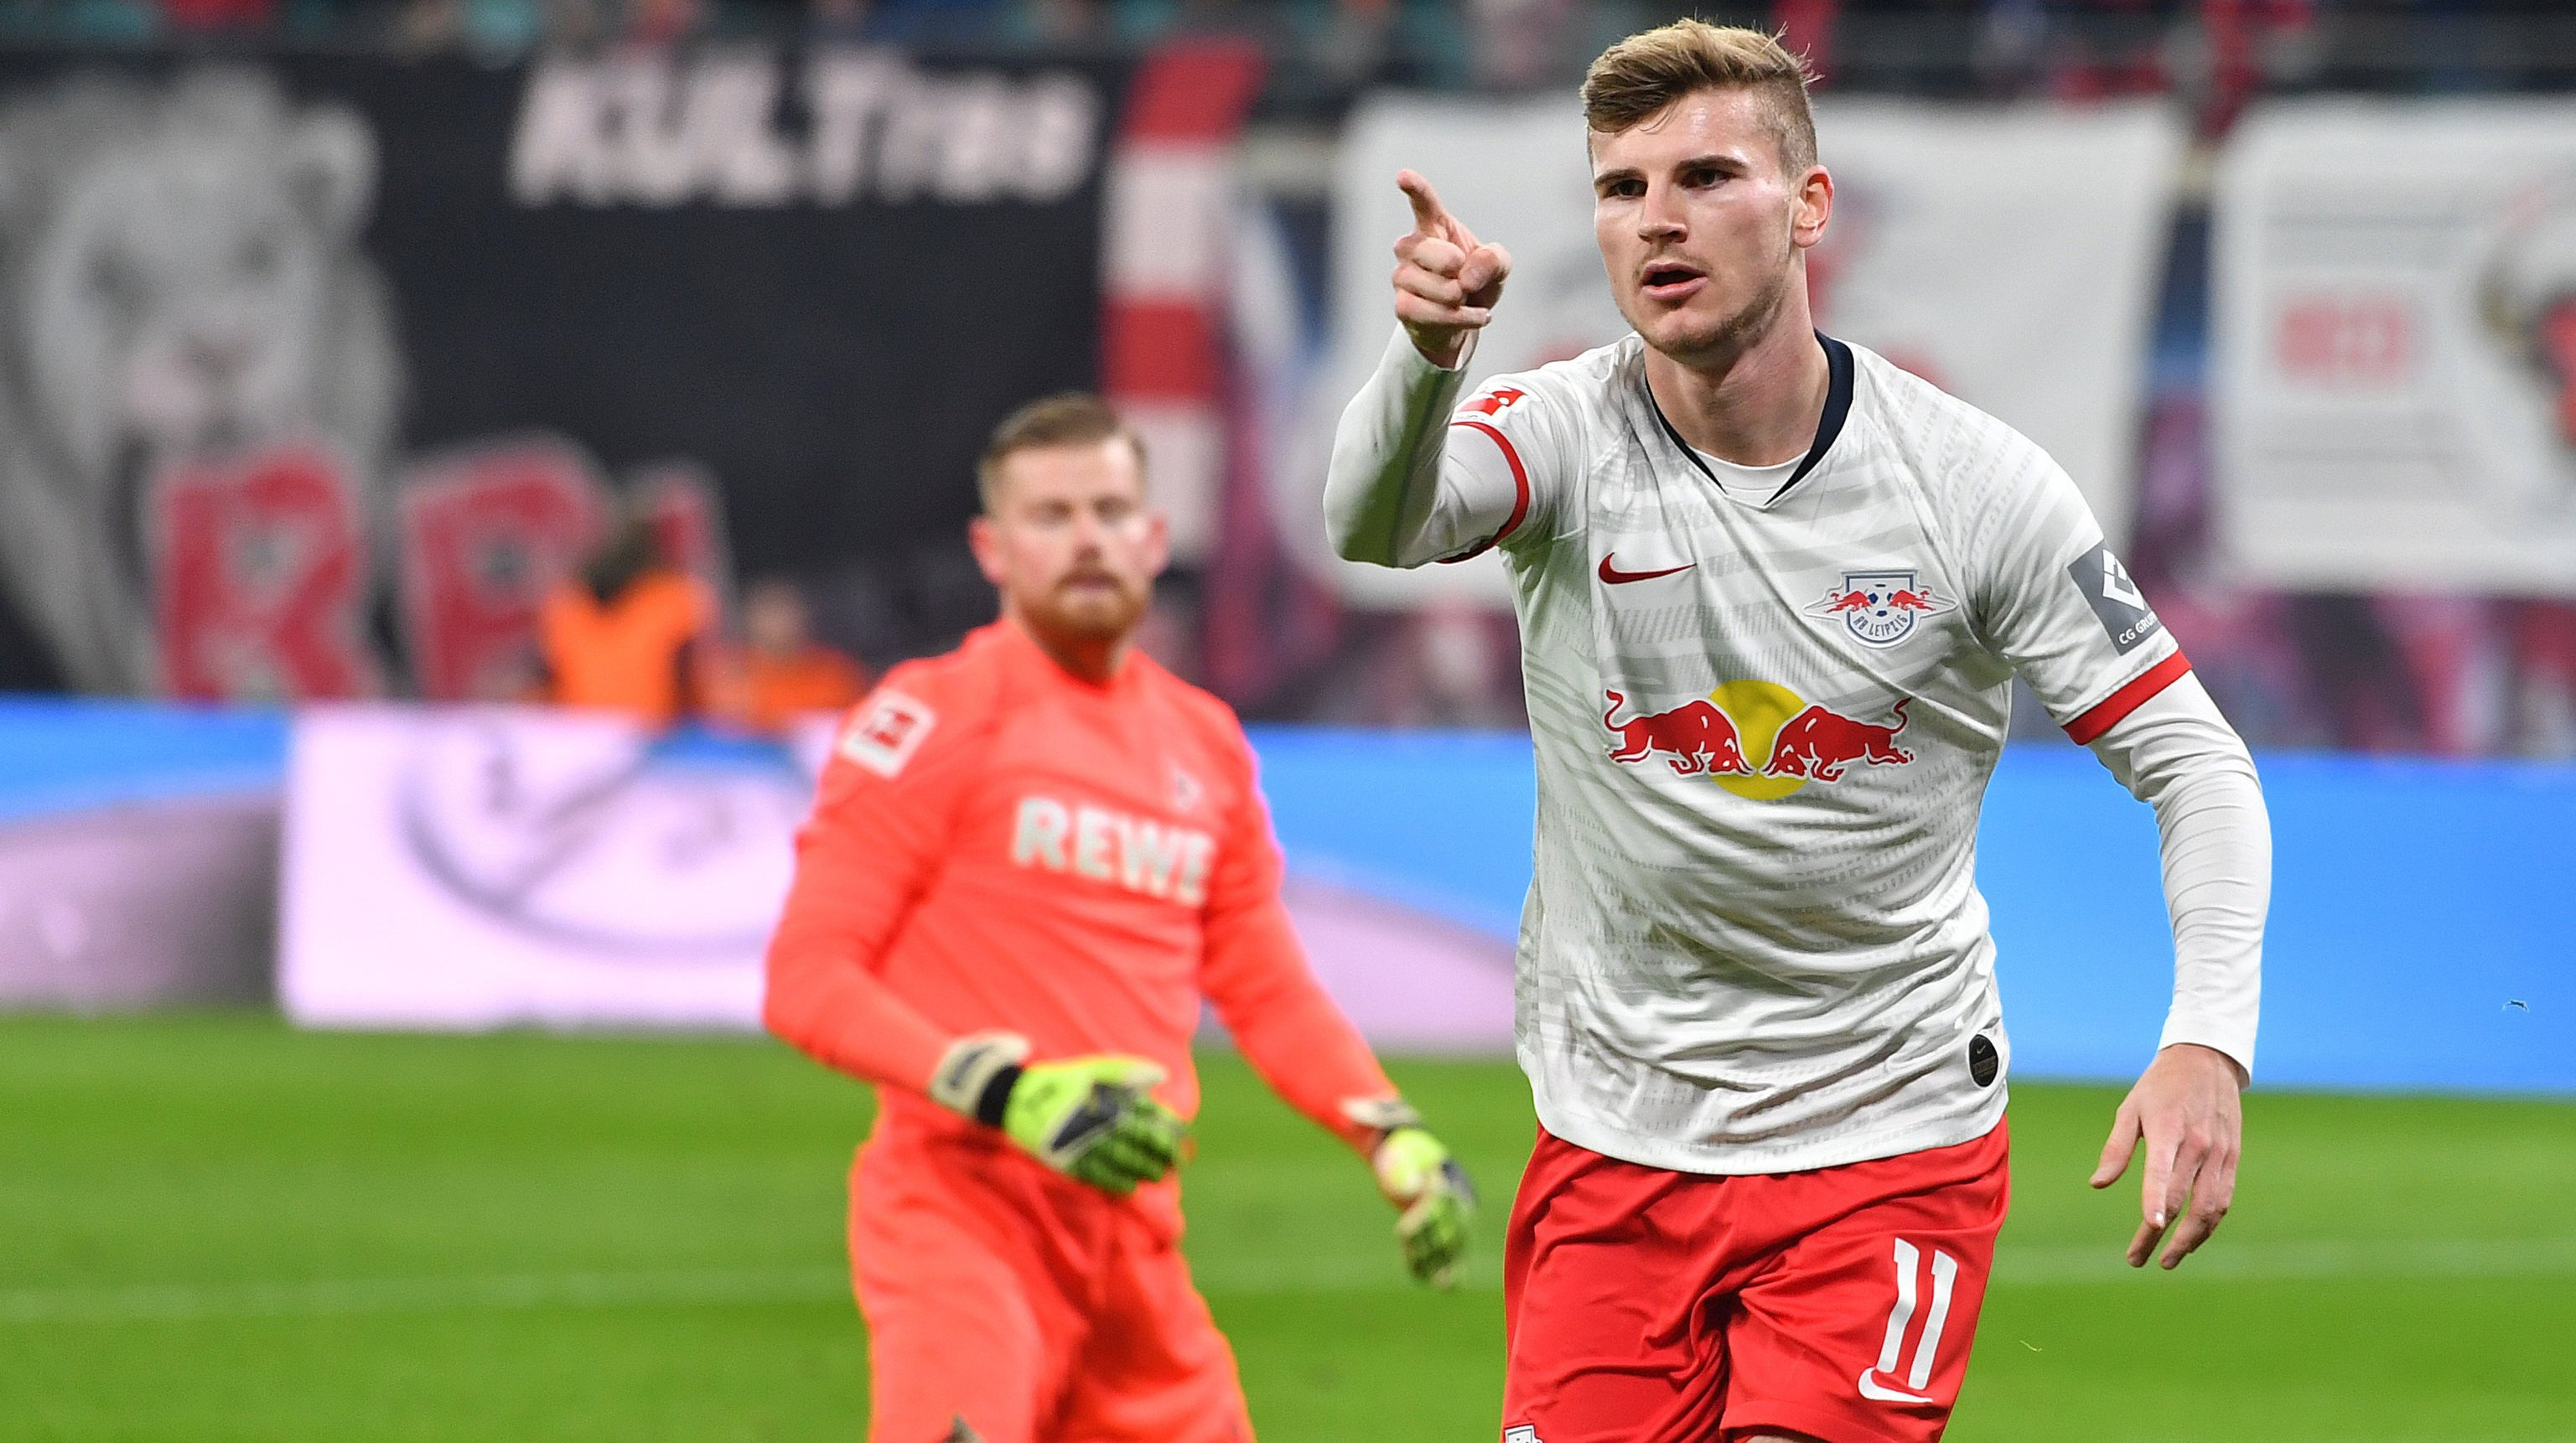 Timo Werner on Liverpool -